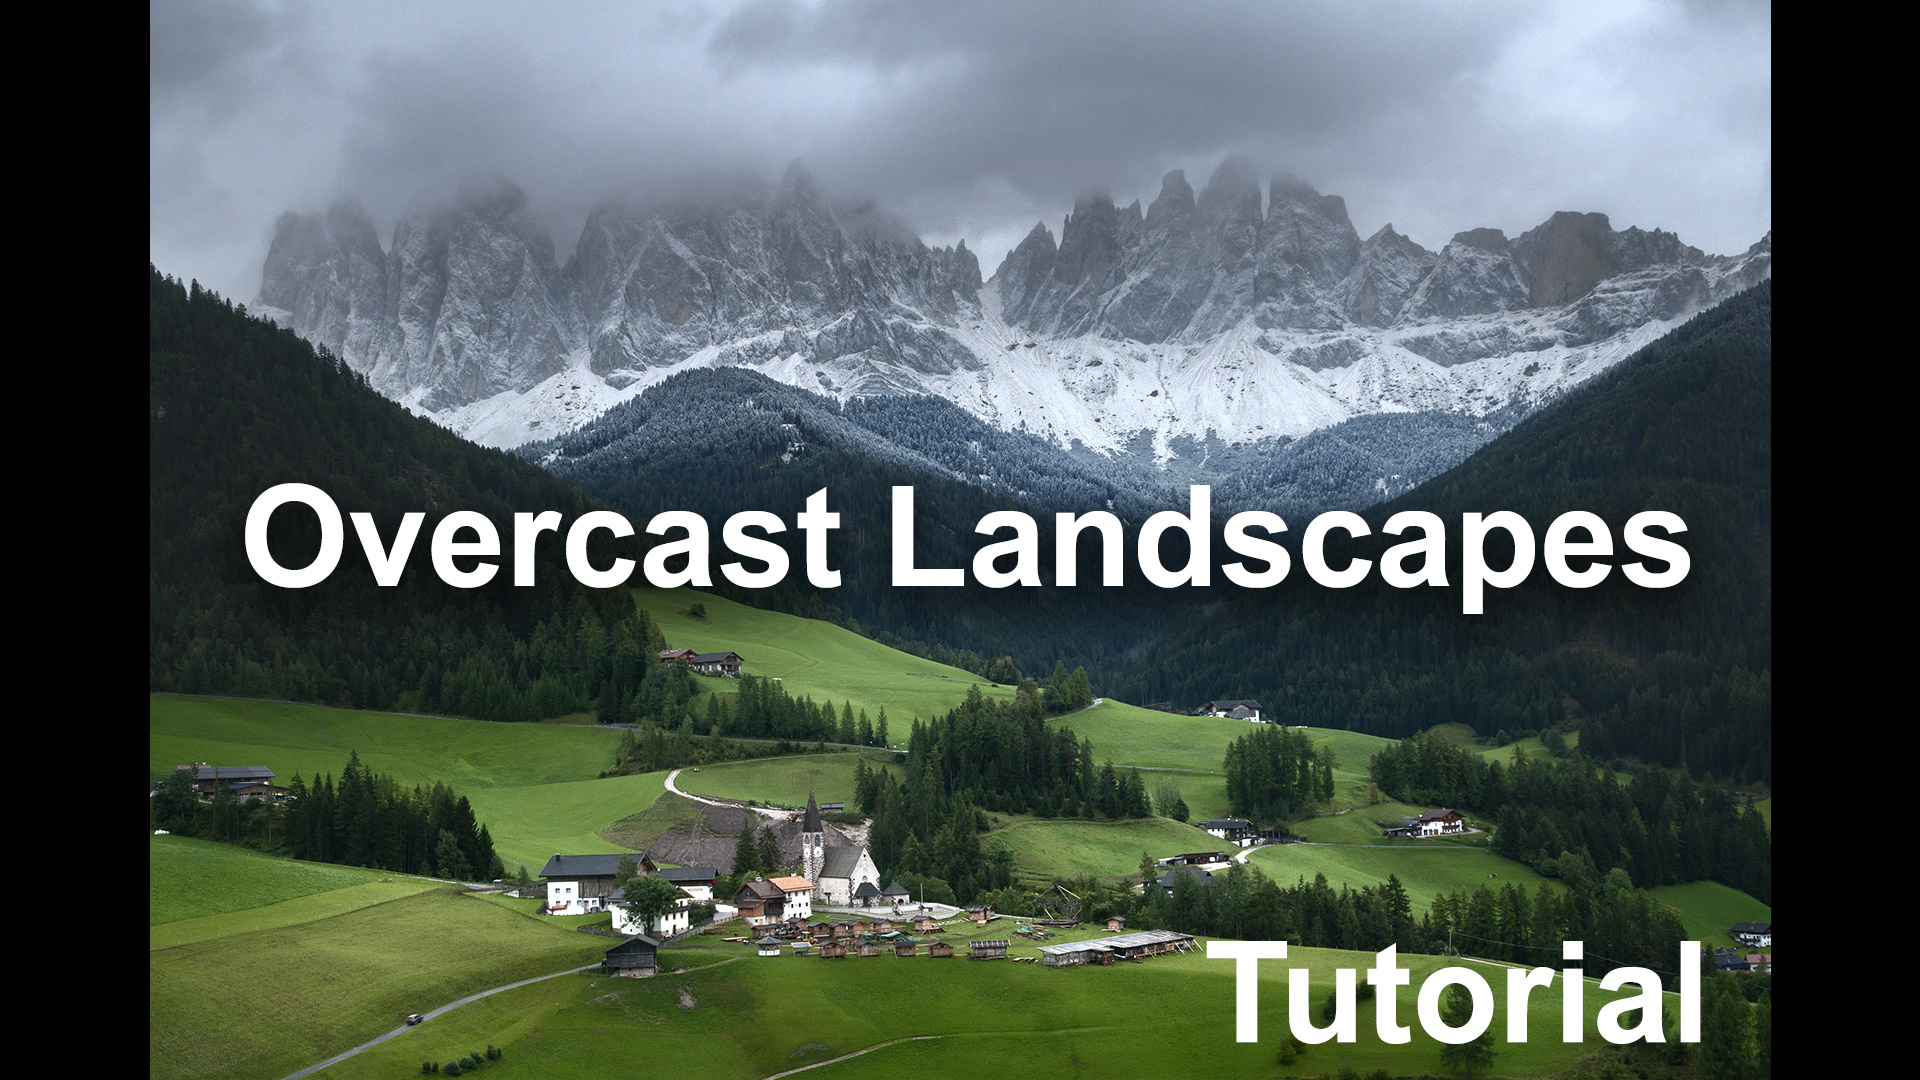 Tutorial – Overcast Landscapes Don't Have to Be Boring